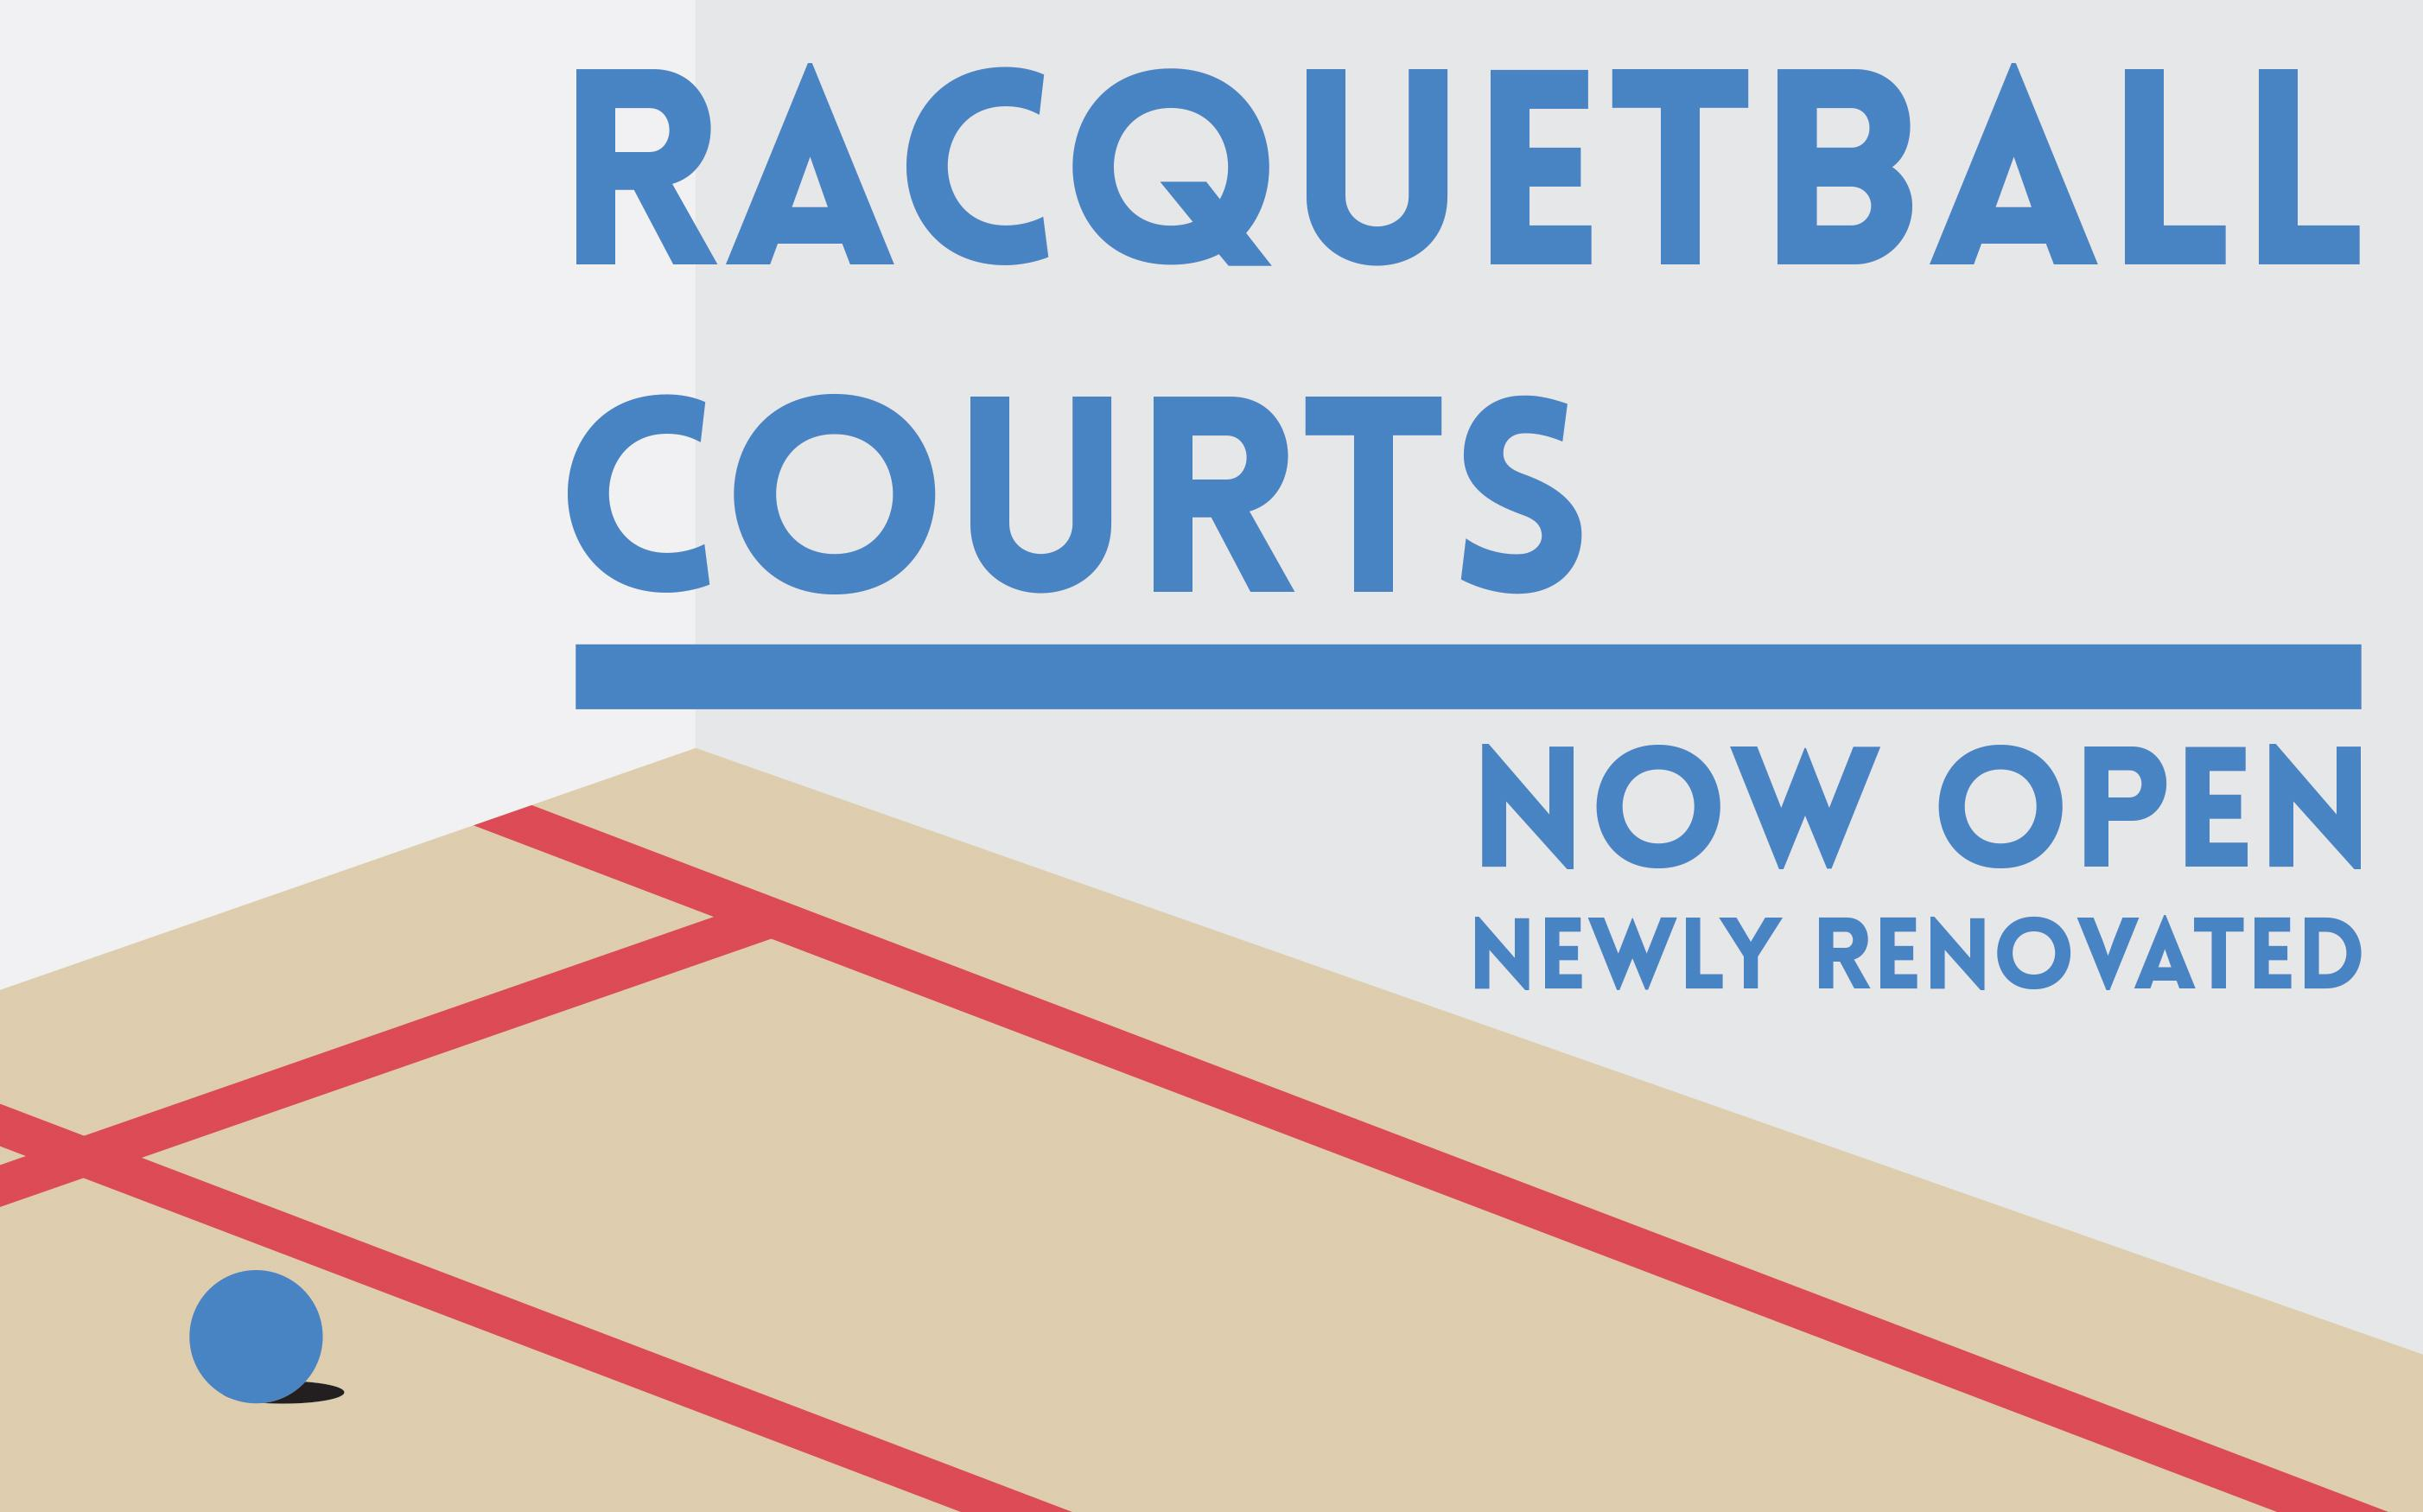 Visit HPER Floor 1 to try out the newly renovated racquetball courts.